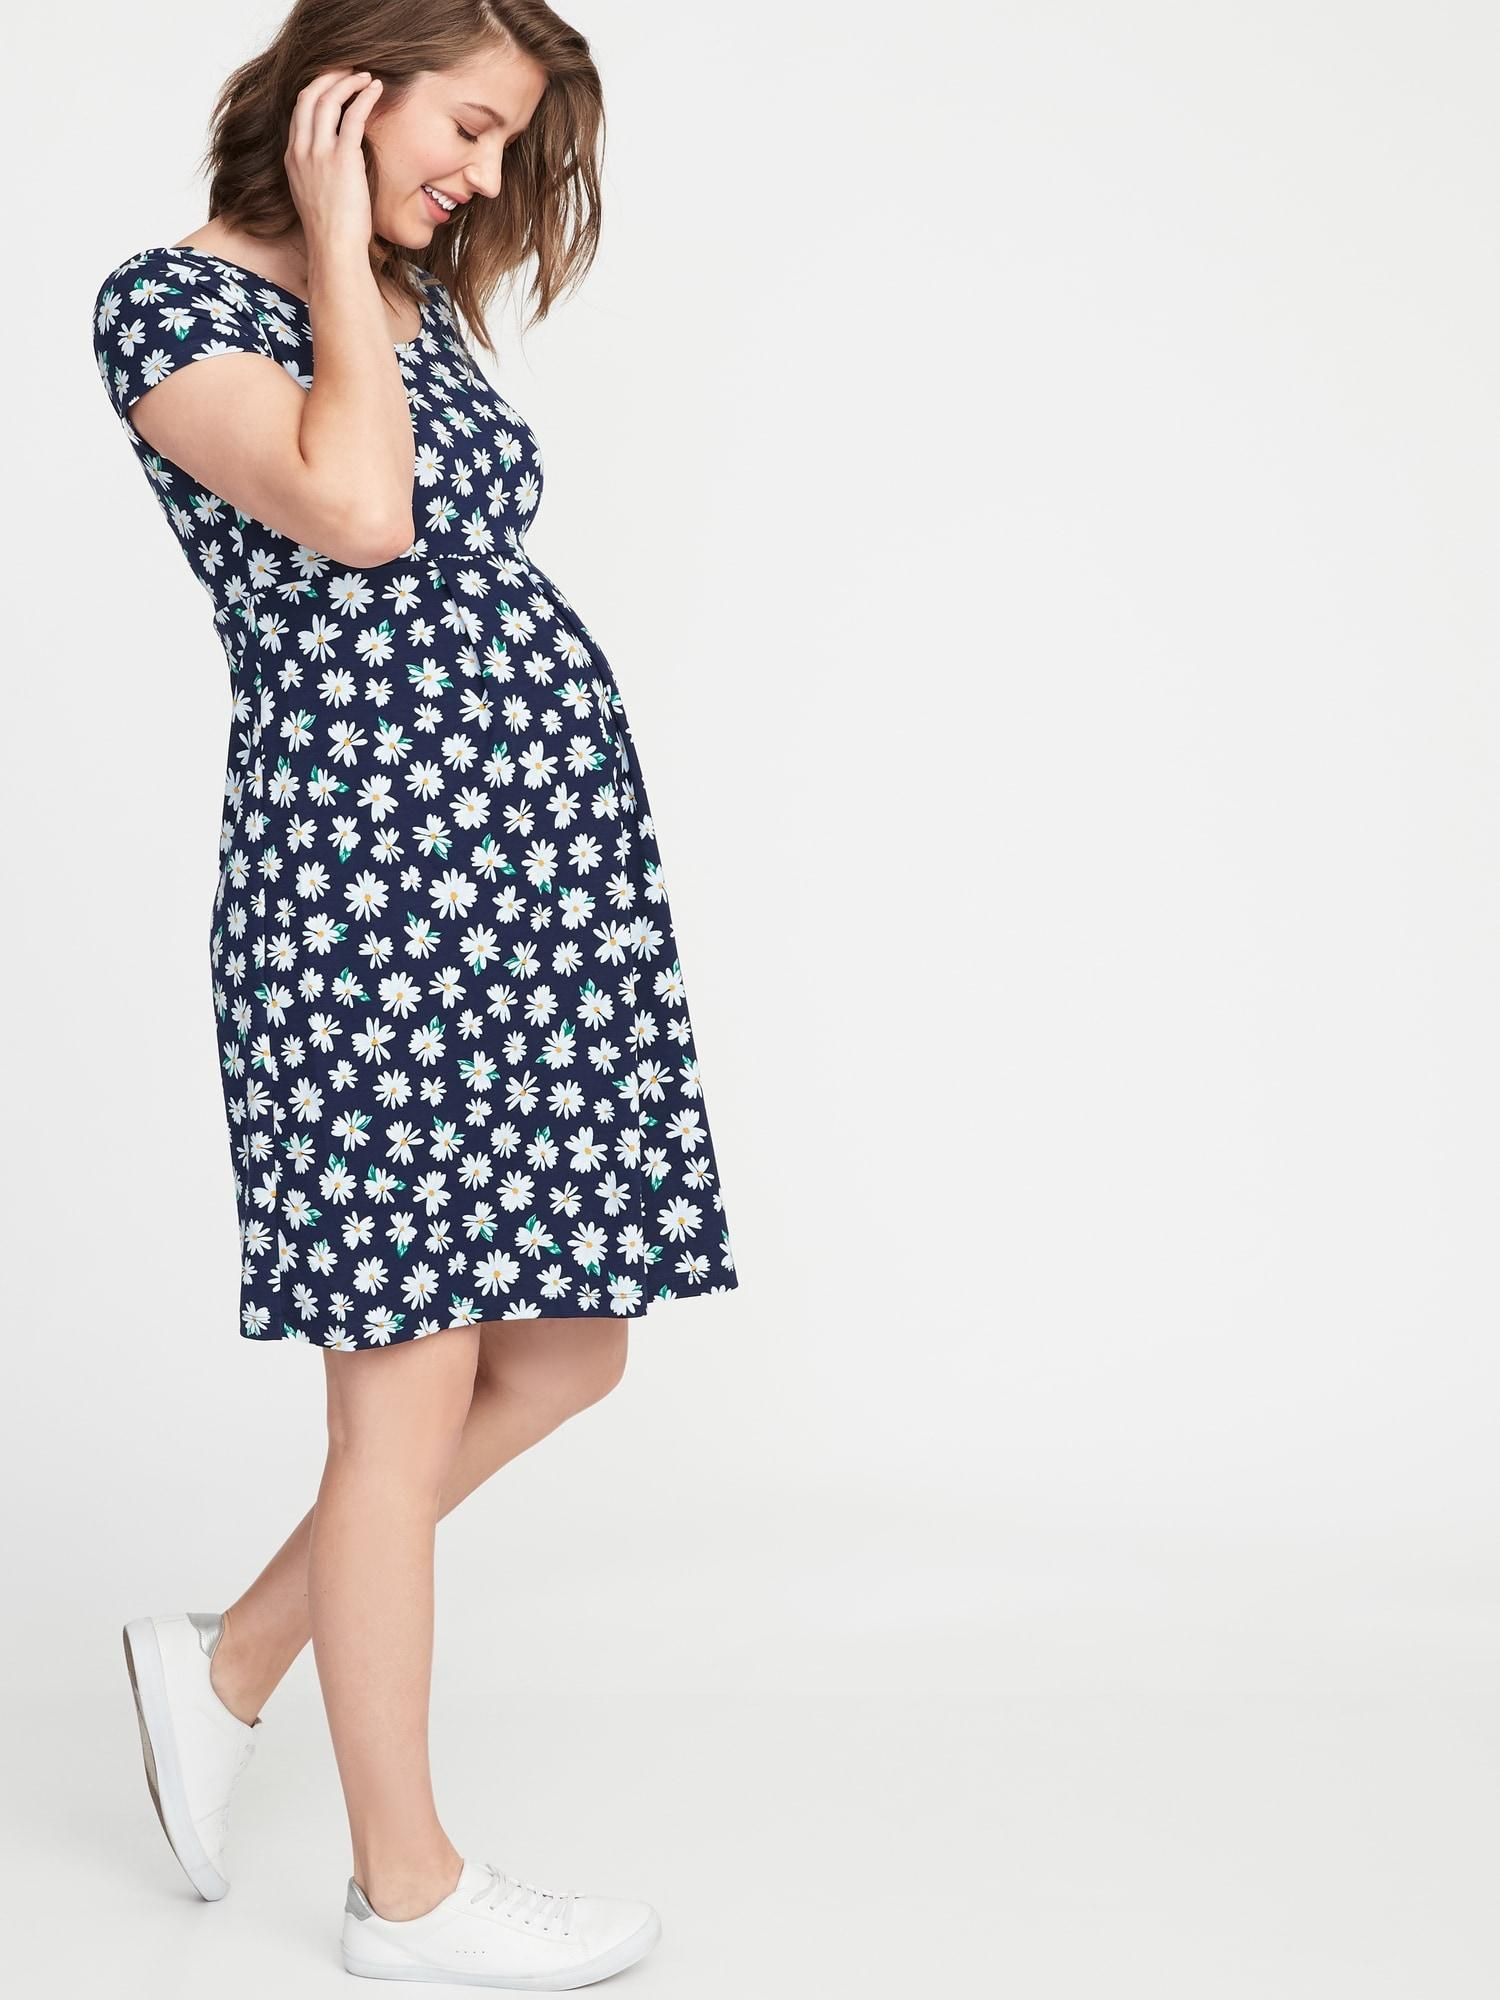 9d4969015035c Old Navy Maternity Fit & Flare Ponte-knit Dress in Blue - Lyst